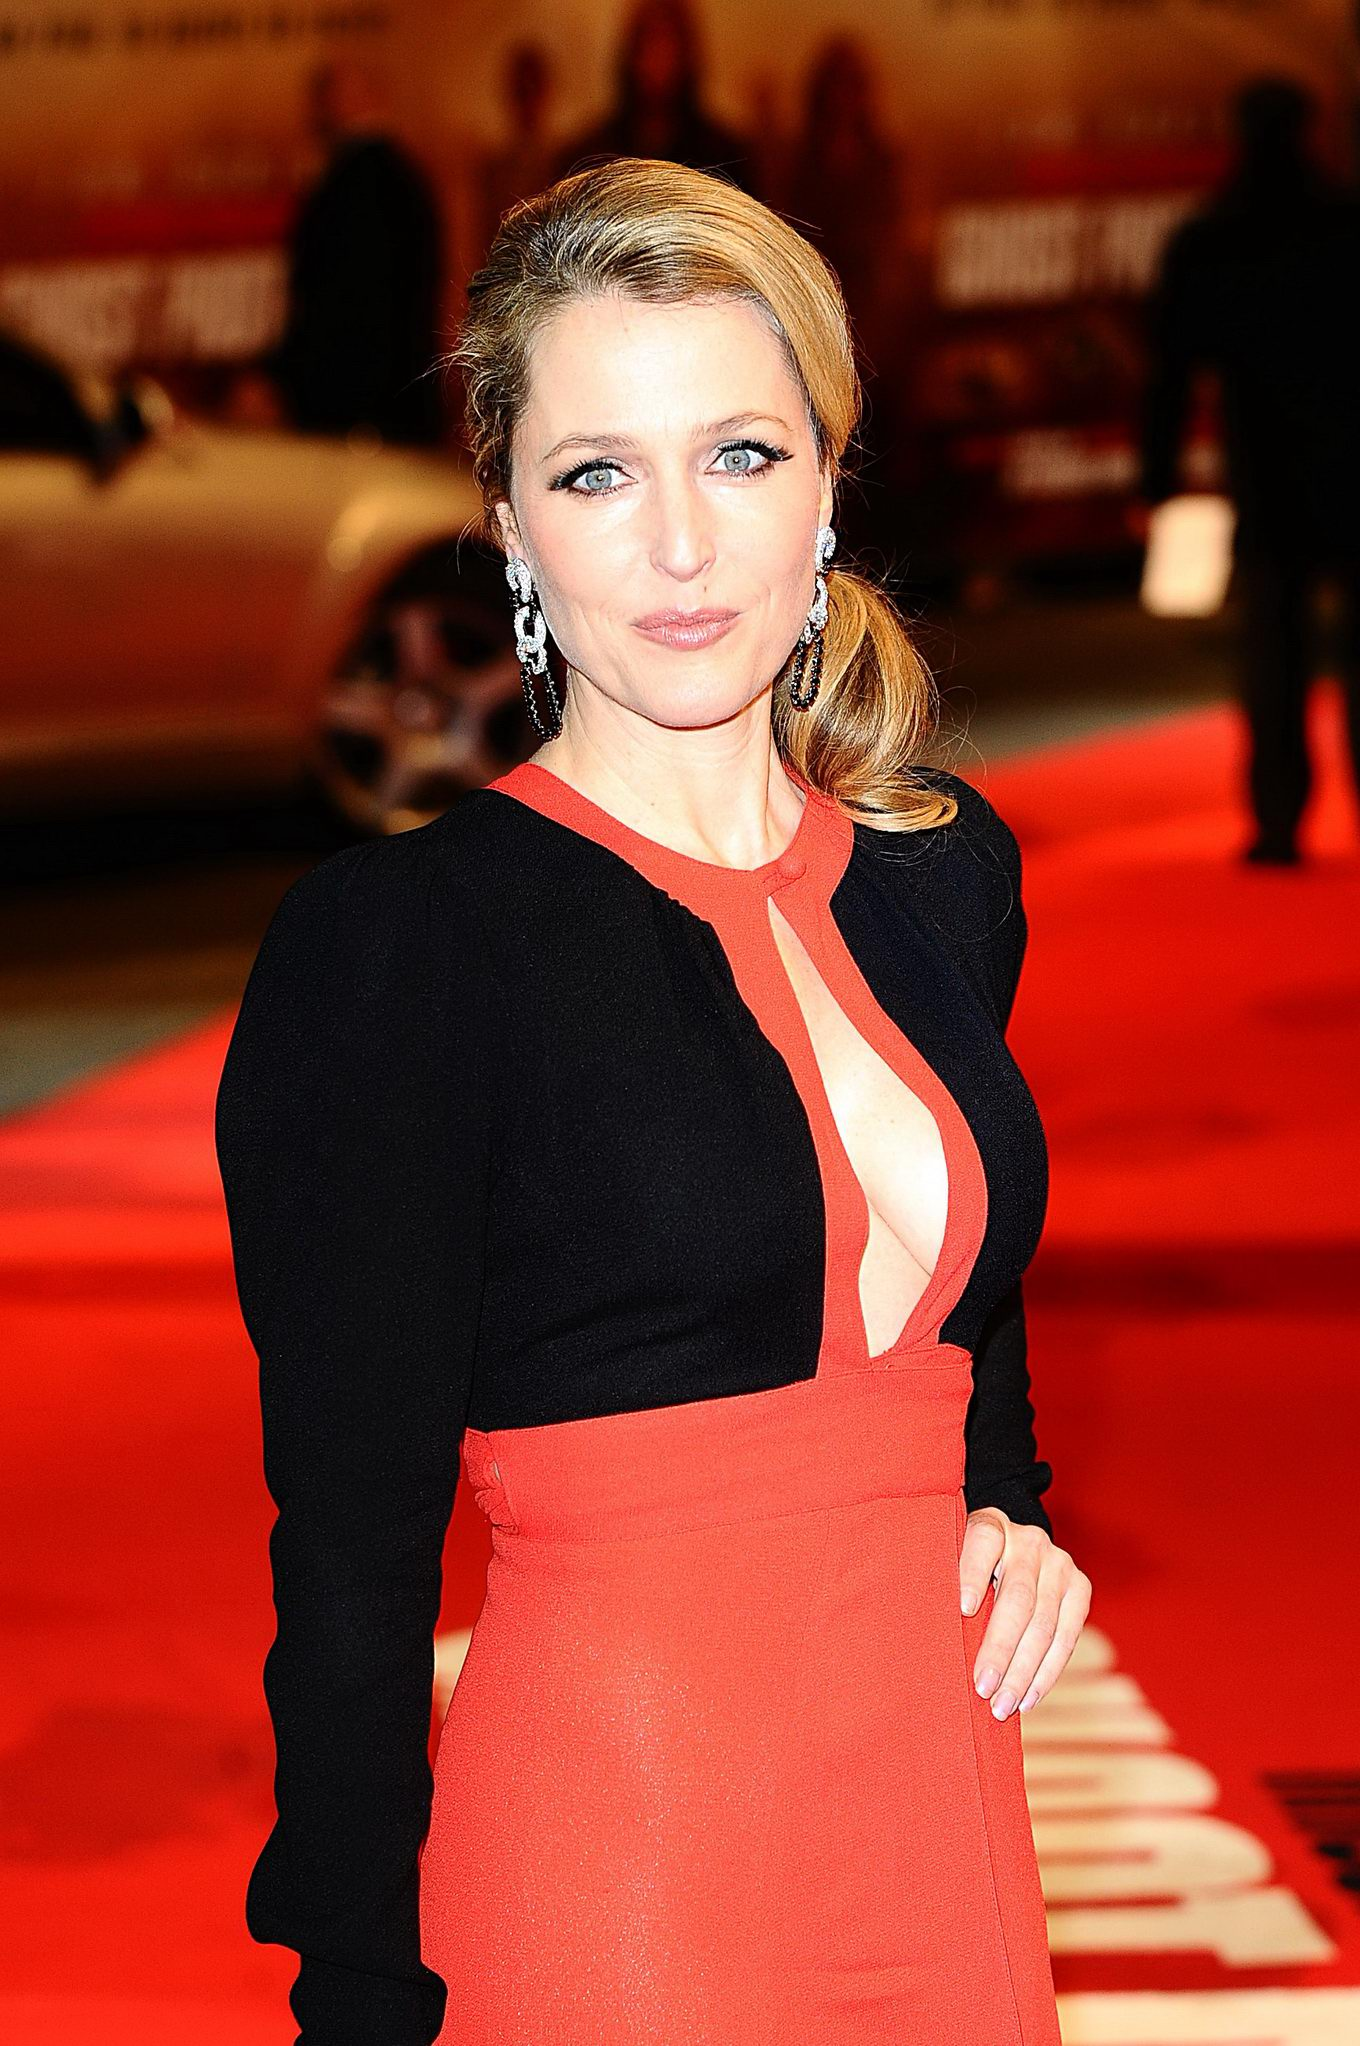 Gillian Anderson feet pictures - Celebrity Feet Info